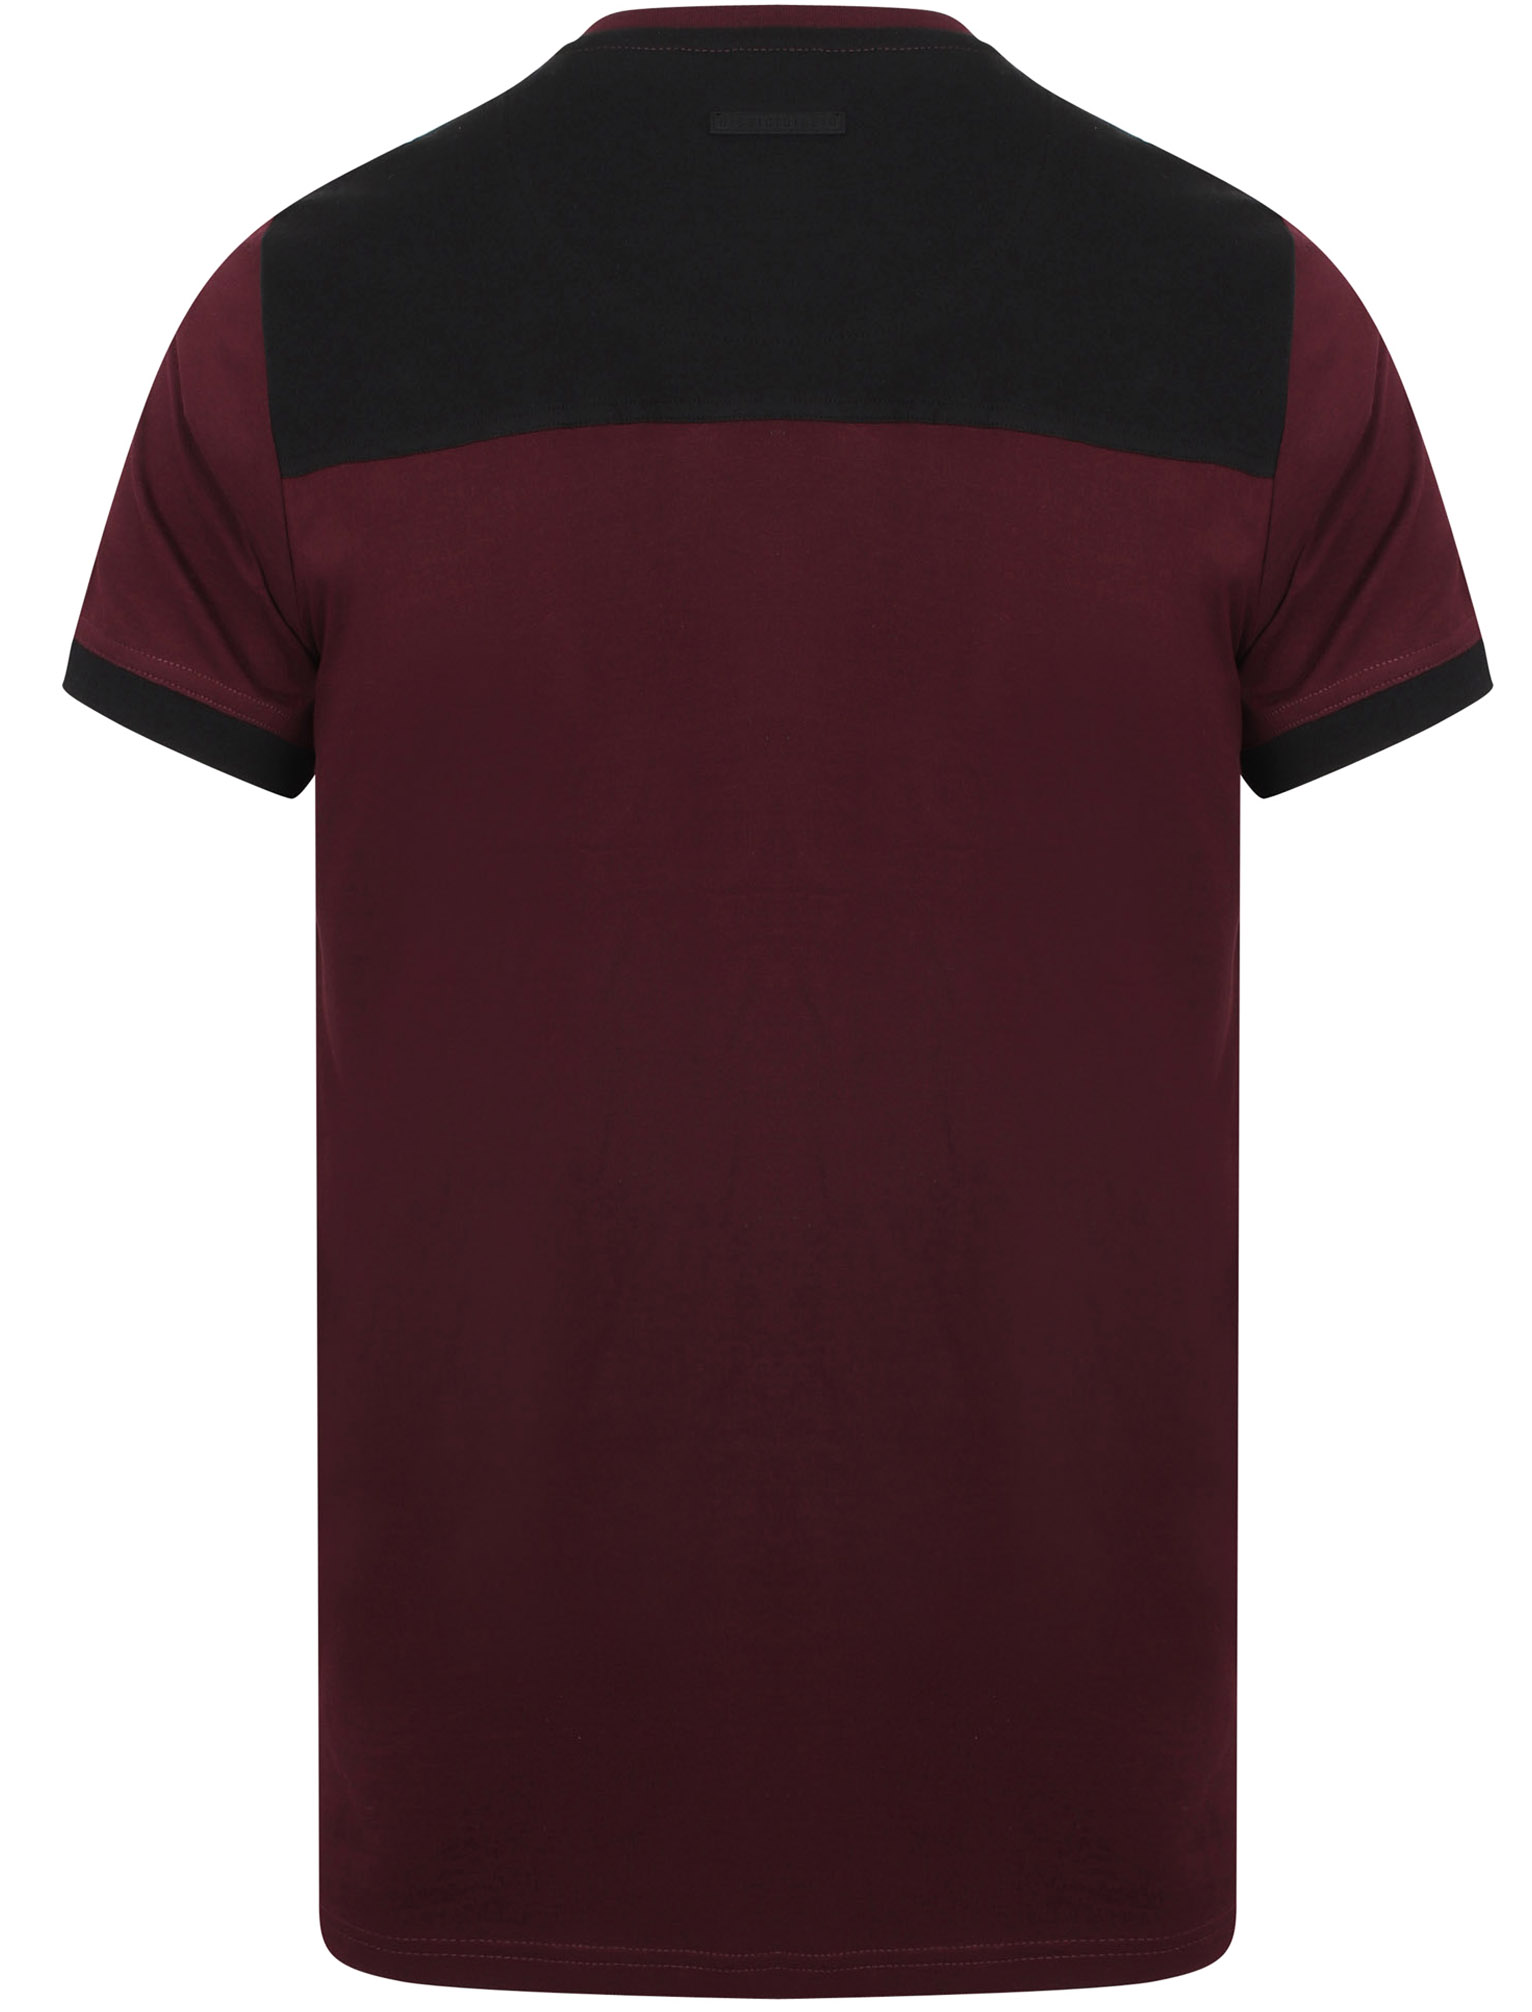 Dissident-men-039-s-Trilude-Y-Neck-T-Shirt-Henley-Top-Casual-Tee-Chest-Pocket-Cotton thumbnail 13